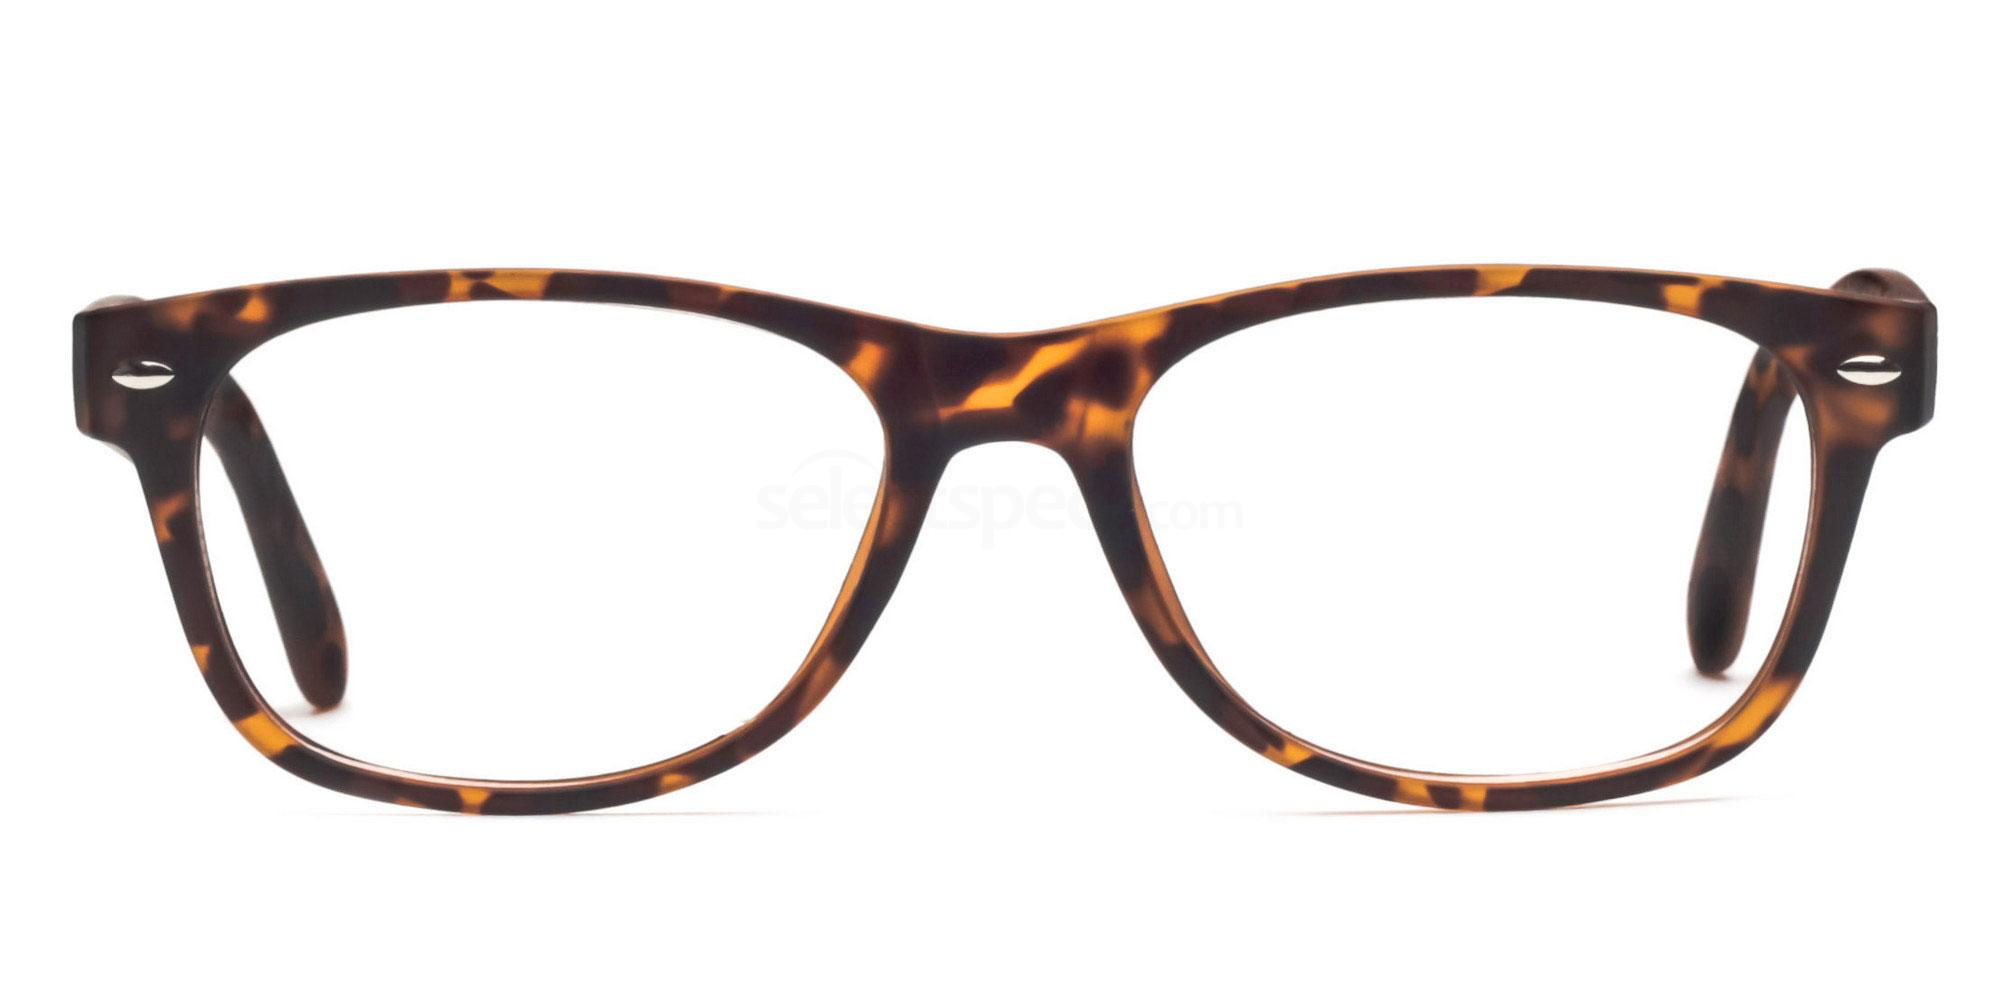 Savannah 8122 tortoiseshell glasses